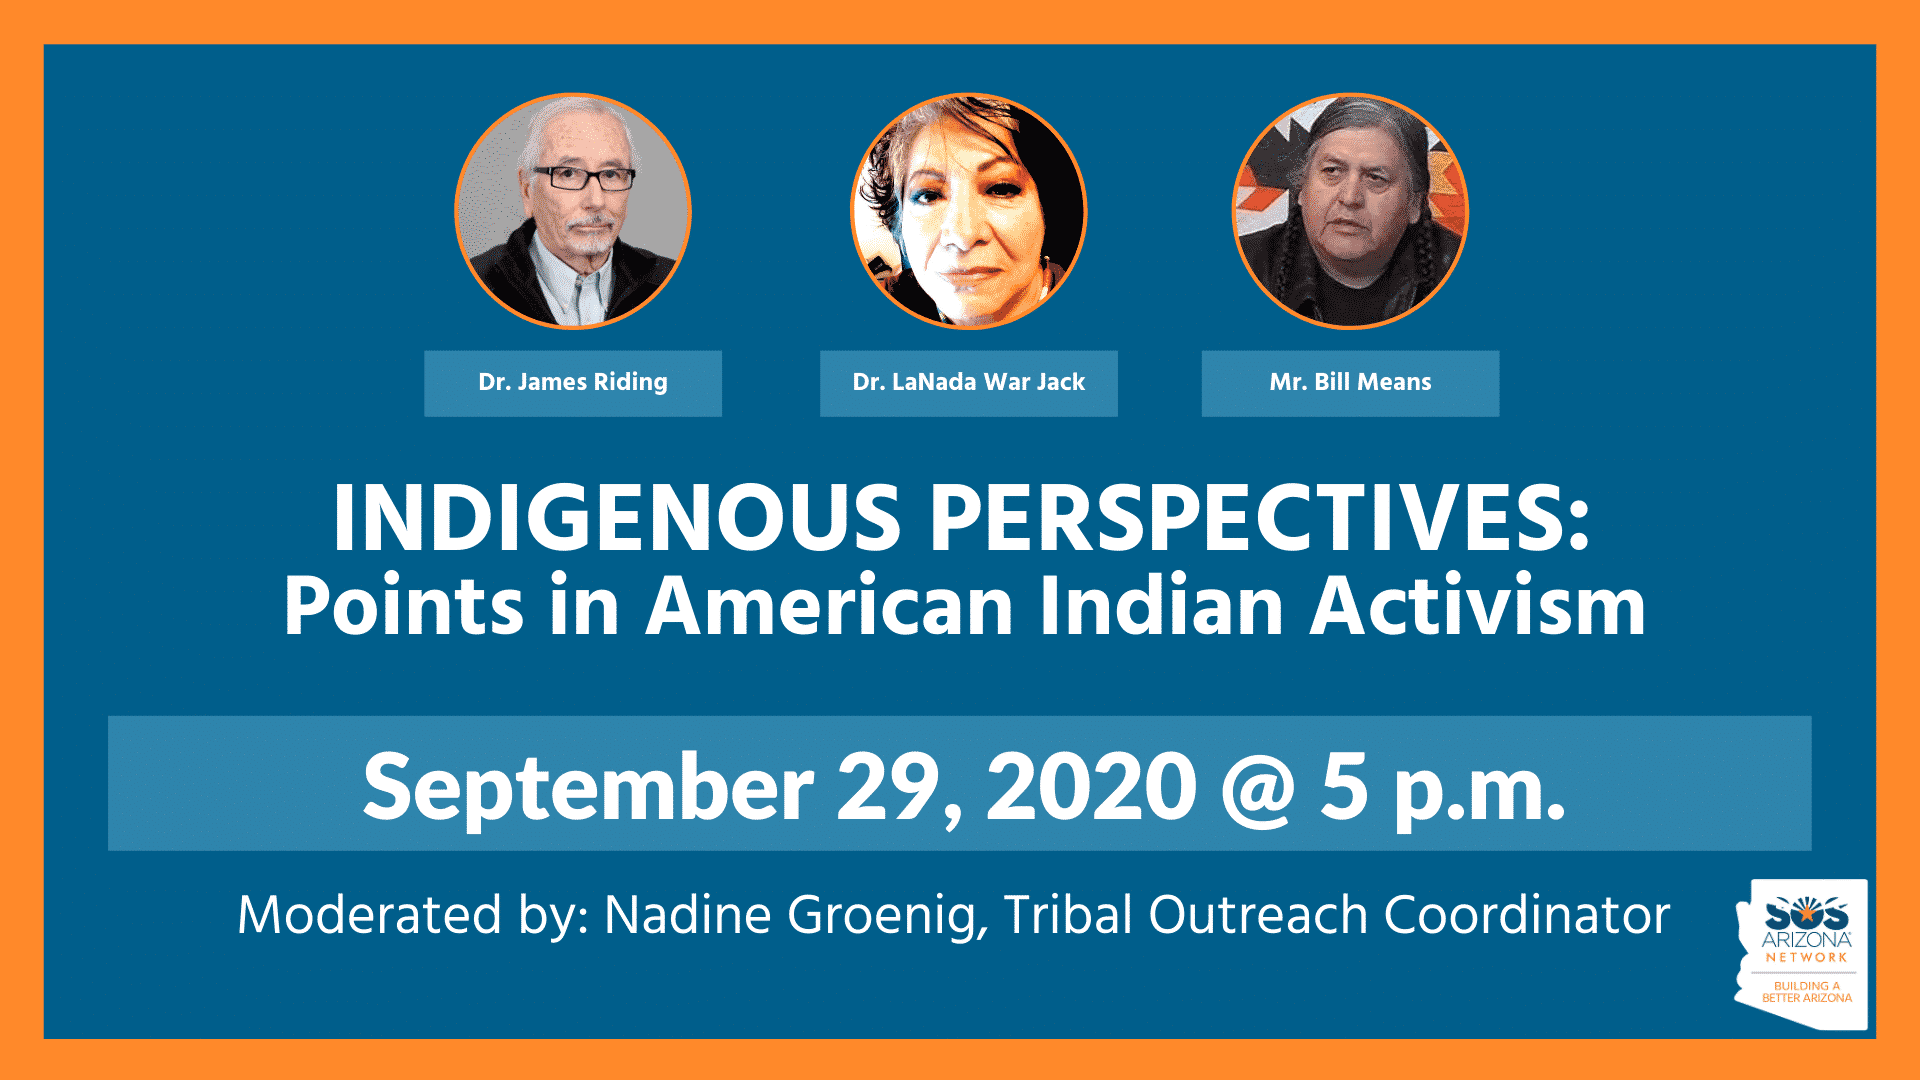 Indigenous Perspectives: Points in American Indian Activism